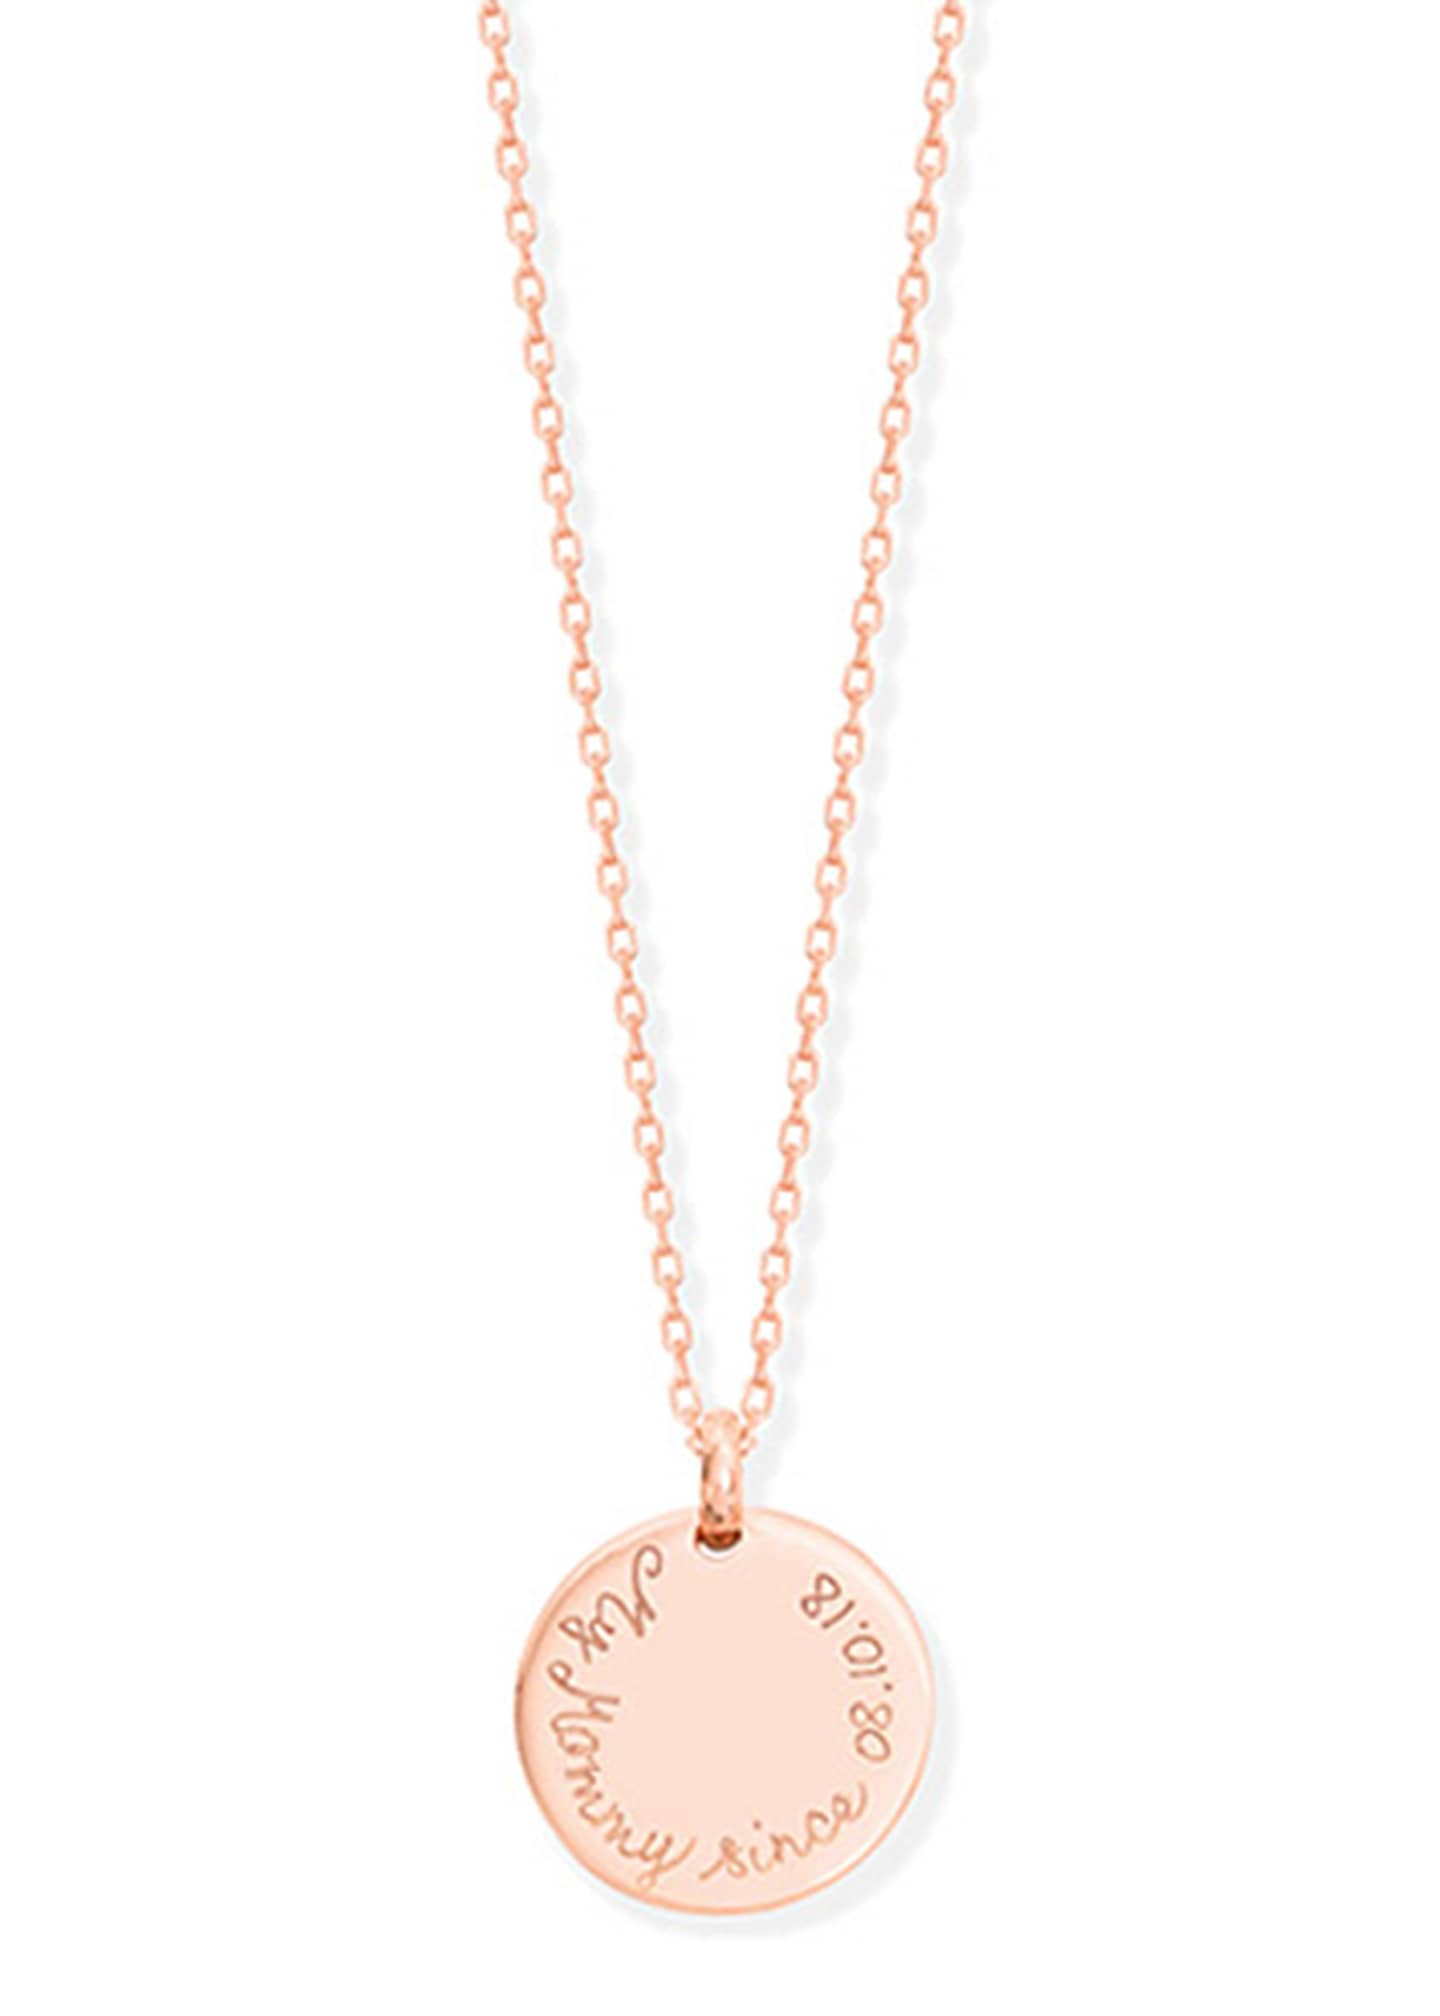 Merci Maman Personalized Edge Charm Necklace